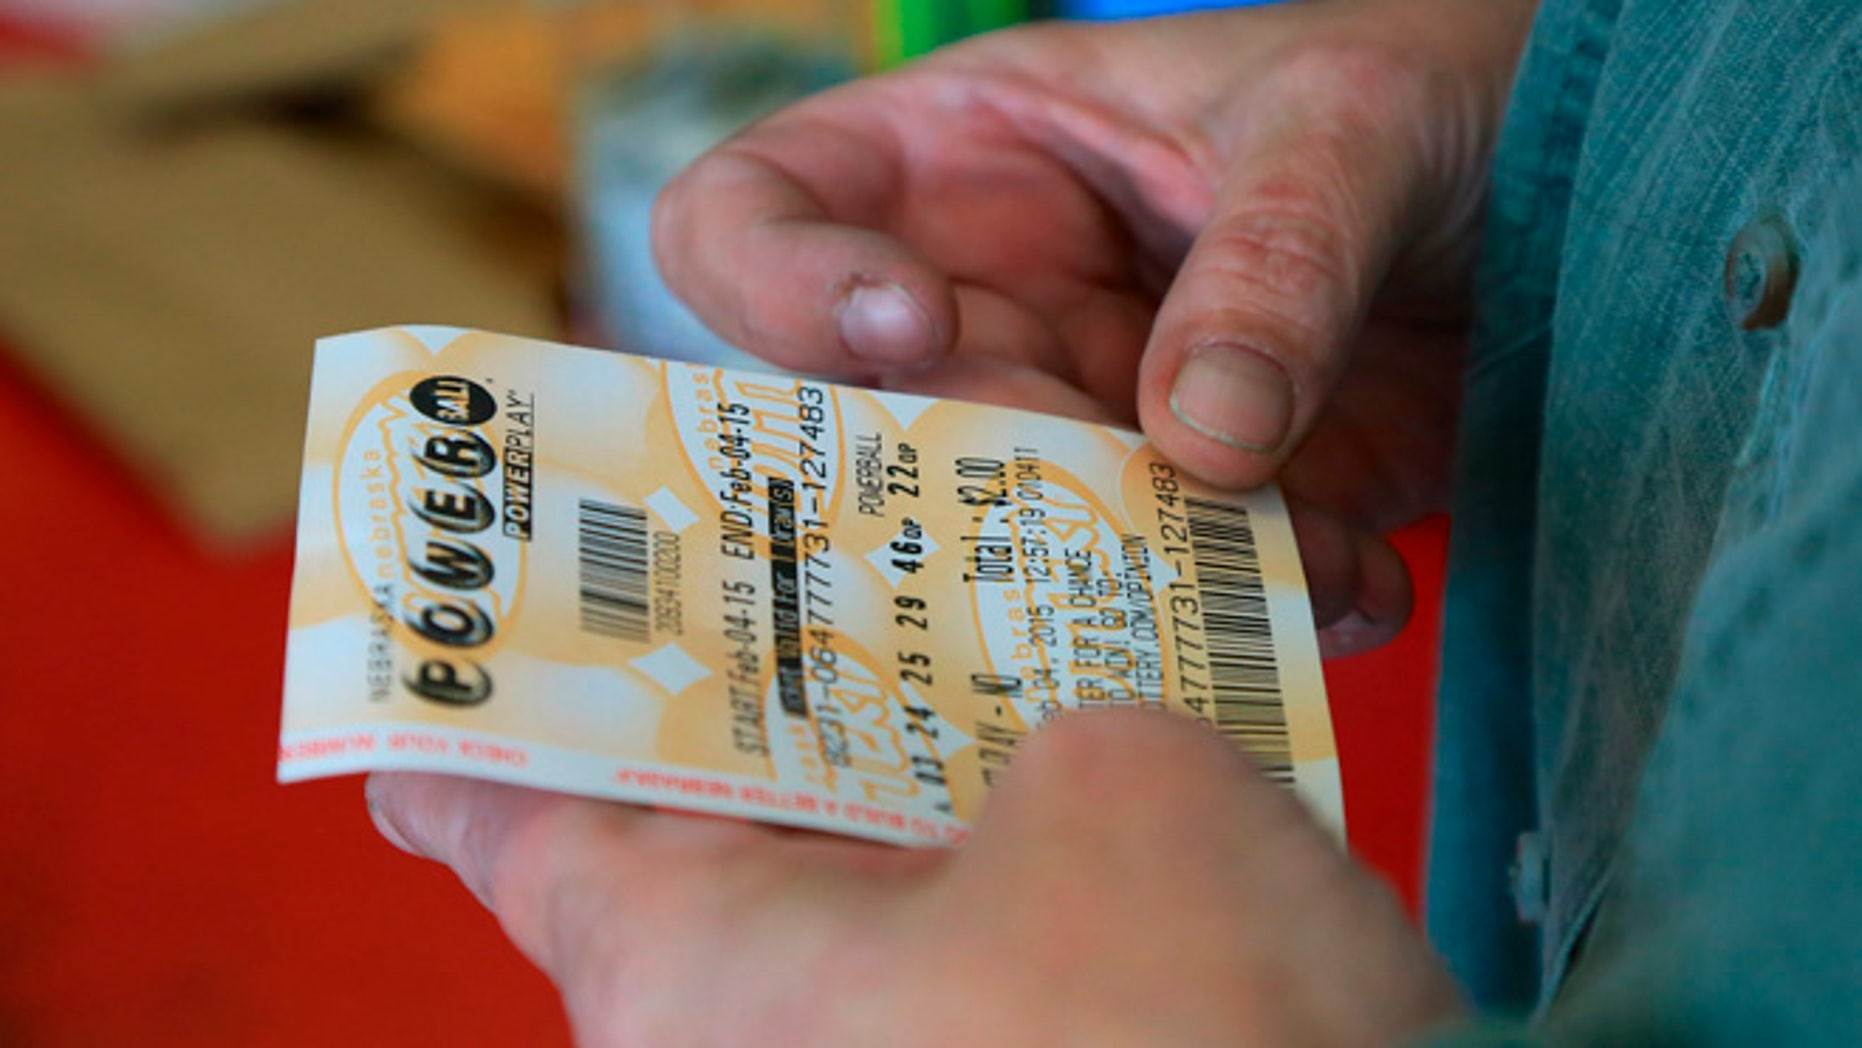 Feb. 4, 2015: A customer inspects the Powerball ticket she purchased at a U-Stop store in Lincoln, Neb.